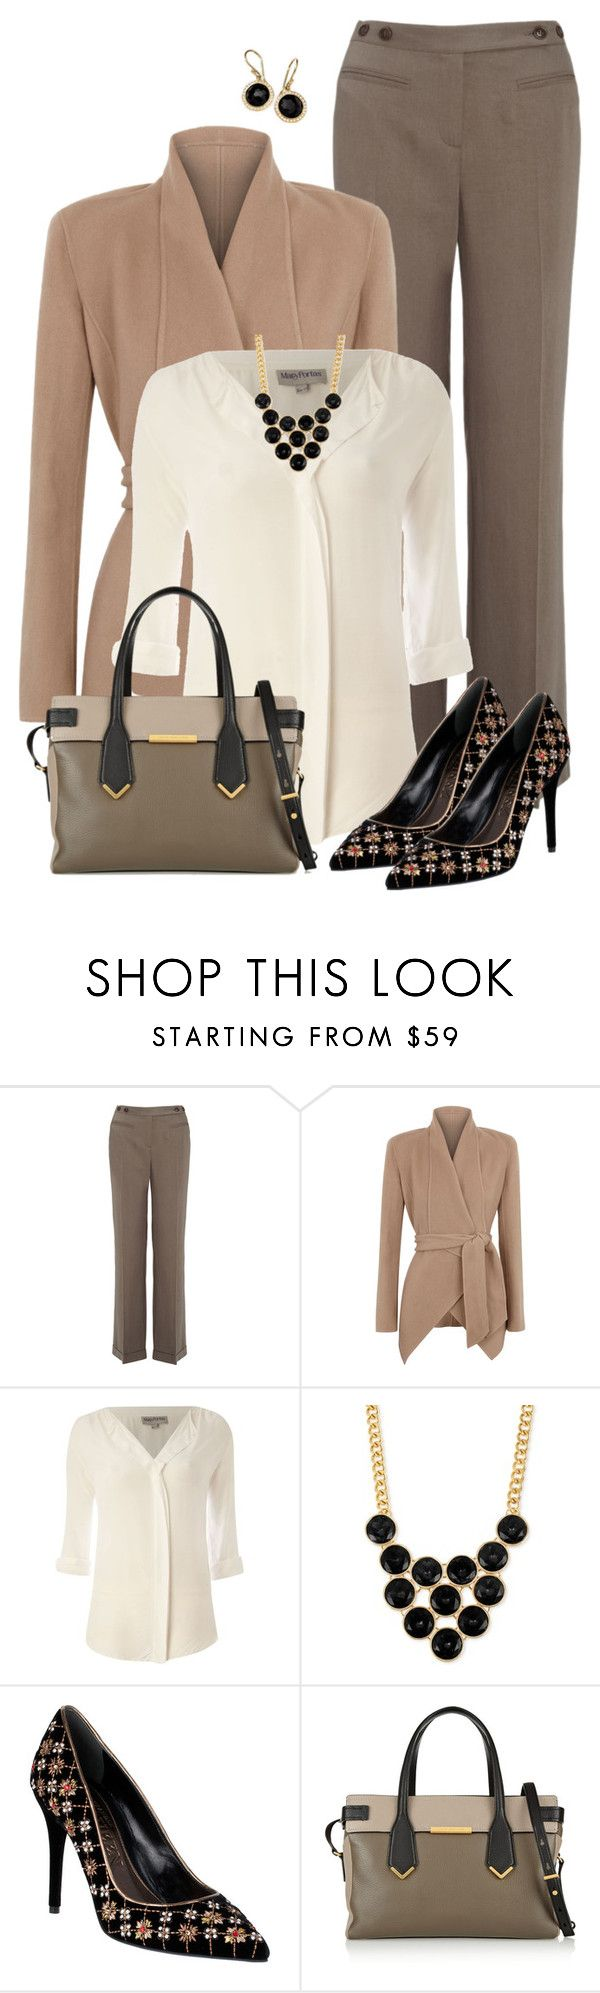 """""""Office Neutrals"""" by kswirsding ❤ liked on Polyvore featuring Monsoon, Donna Karan, Mary Portas, Kenneth Cole, Alexander McQueen, Marc by Marc Jacobs and Ippolita"""